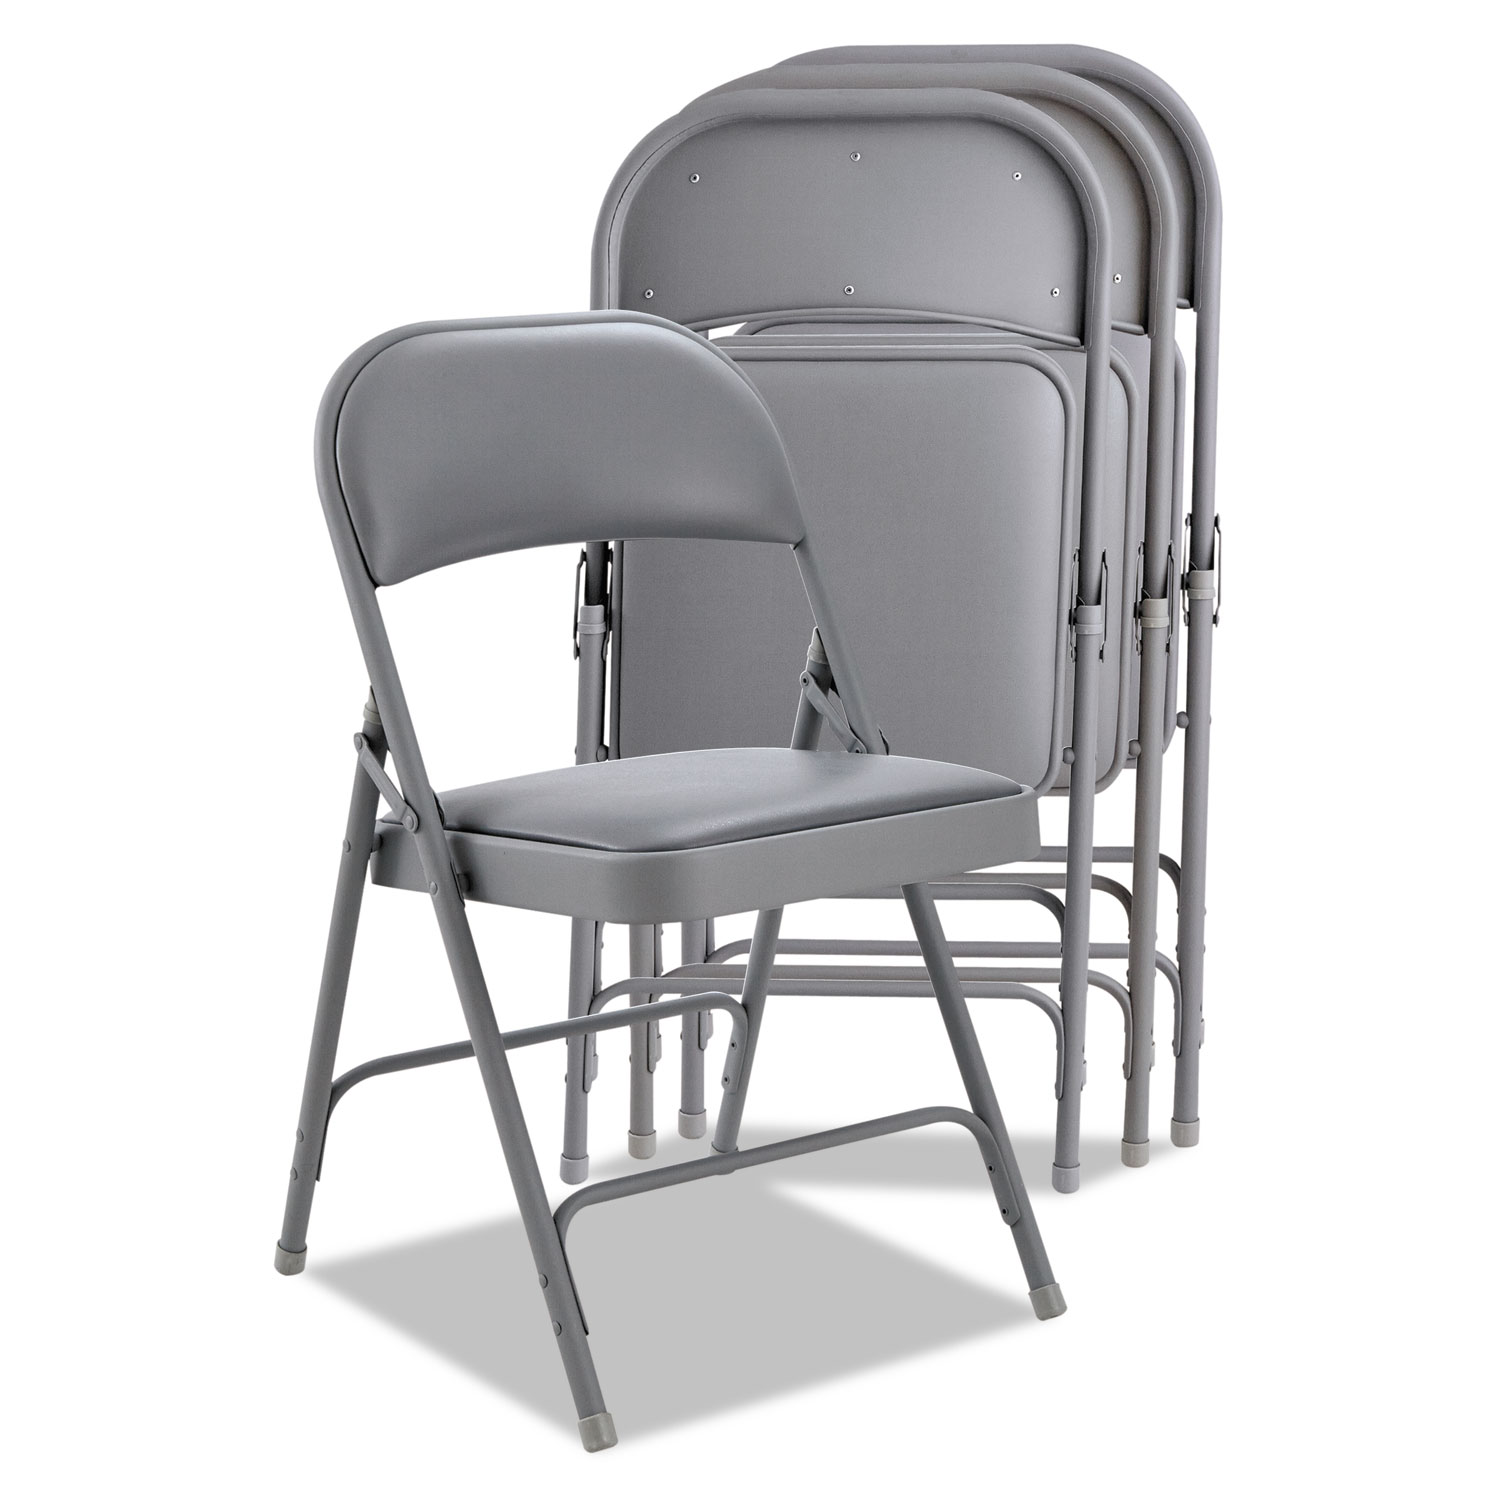 Fantastic Steel Folding Chair With Two Brace Support Light Gray Seat Light Gray Back Light Gray Base 4 Carton Theyellowbook Wood Chair Design Ideas Theyellowbookinfo